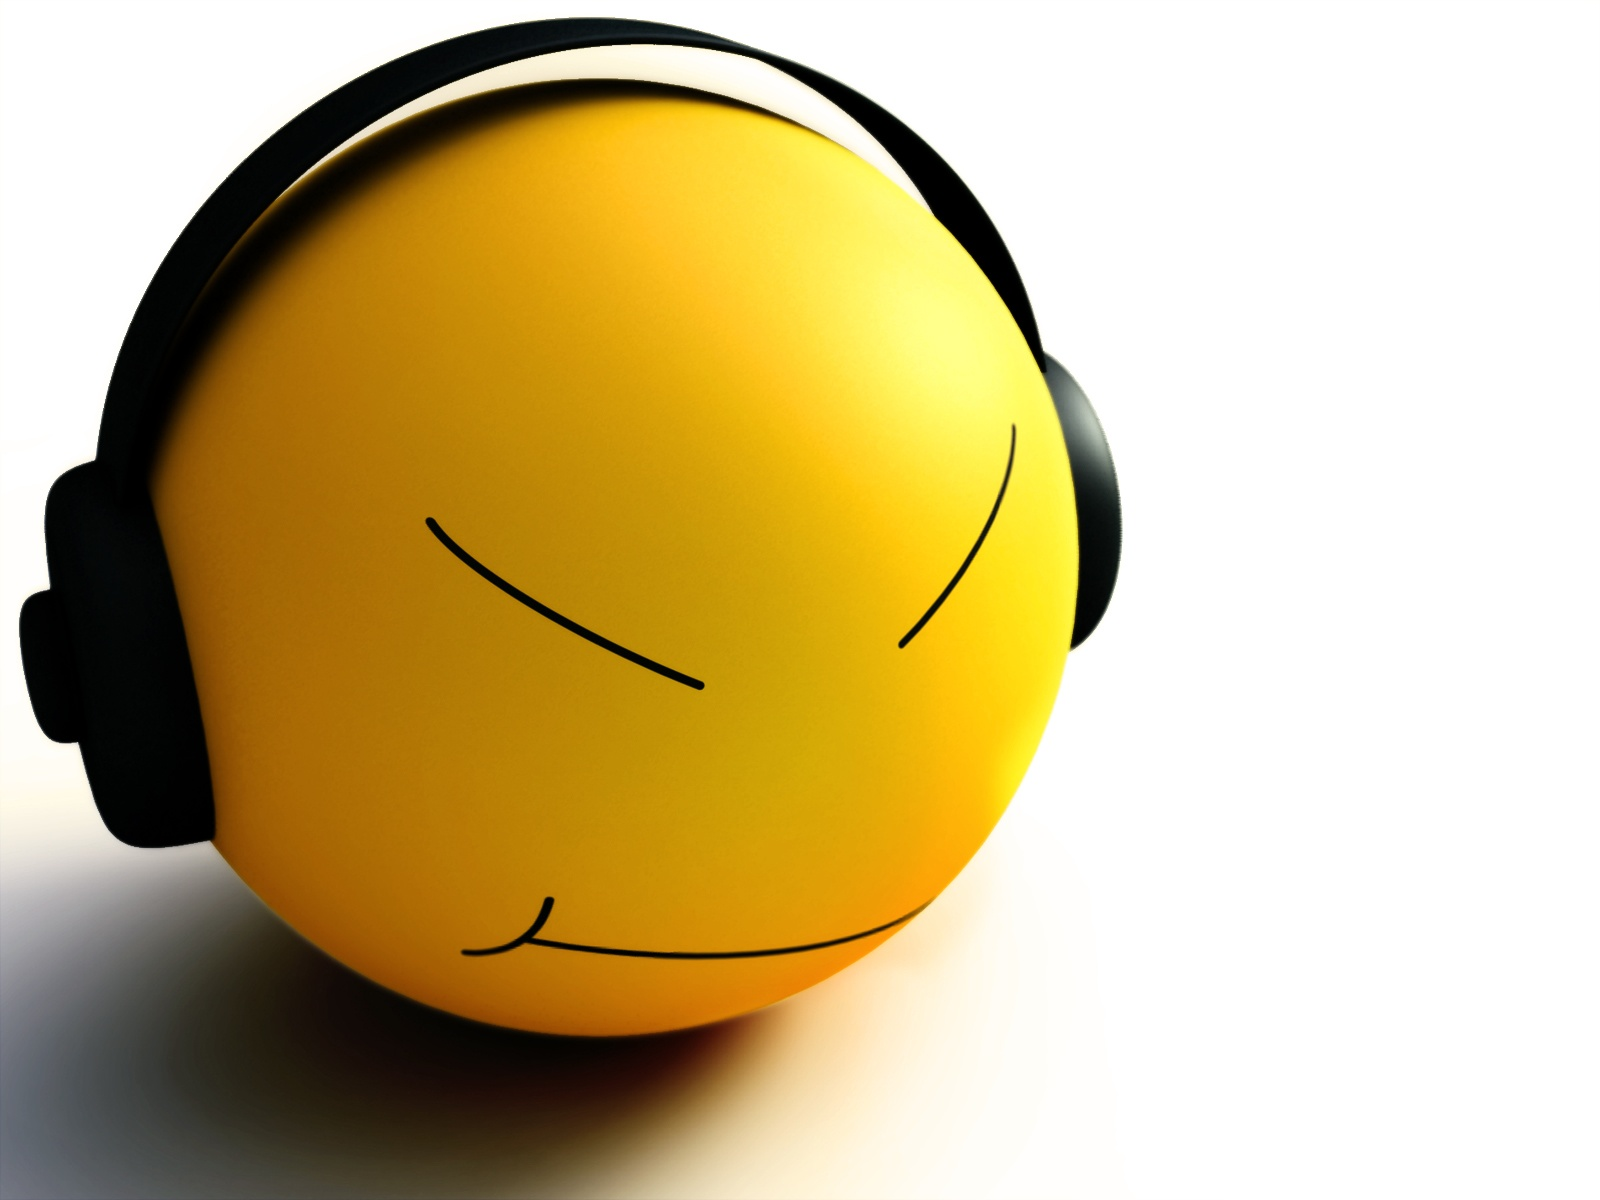 Abstract Girl Face Wallpaper Smiley Listen Music Wallpapers In Jpg Format For Free Download